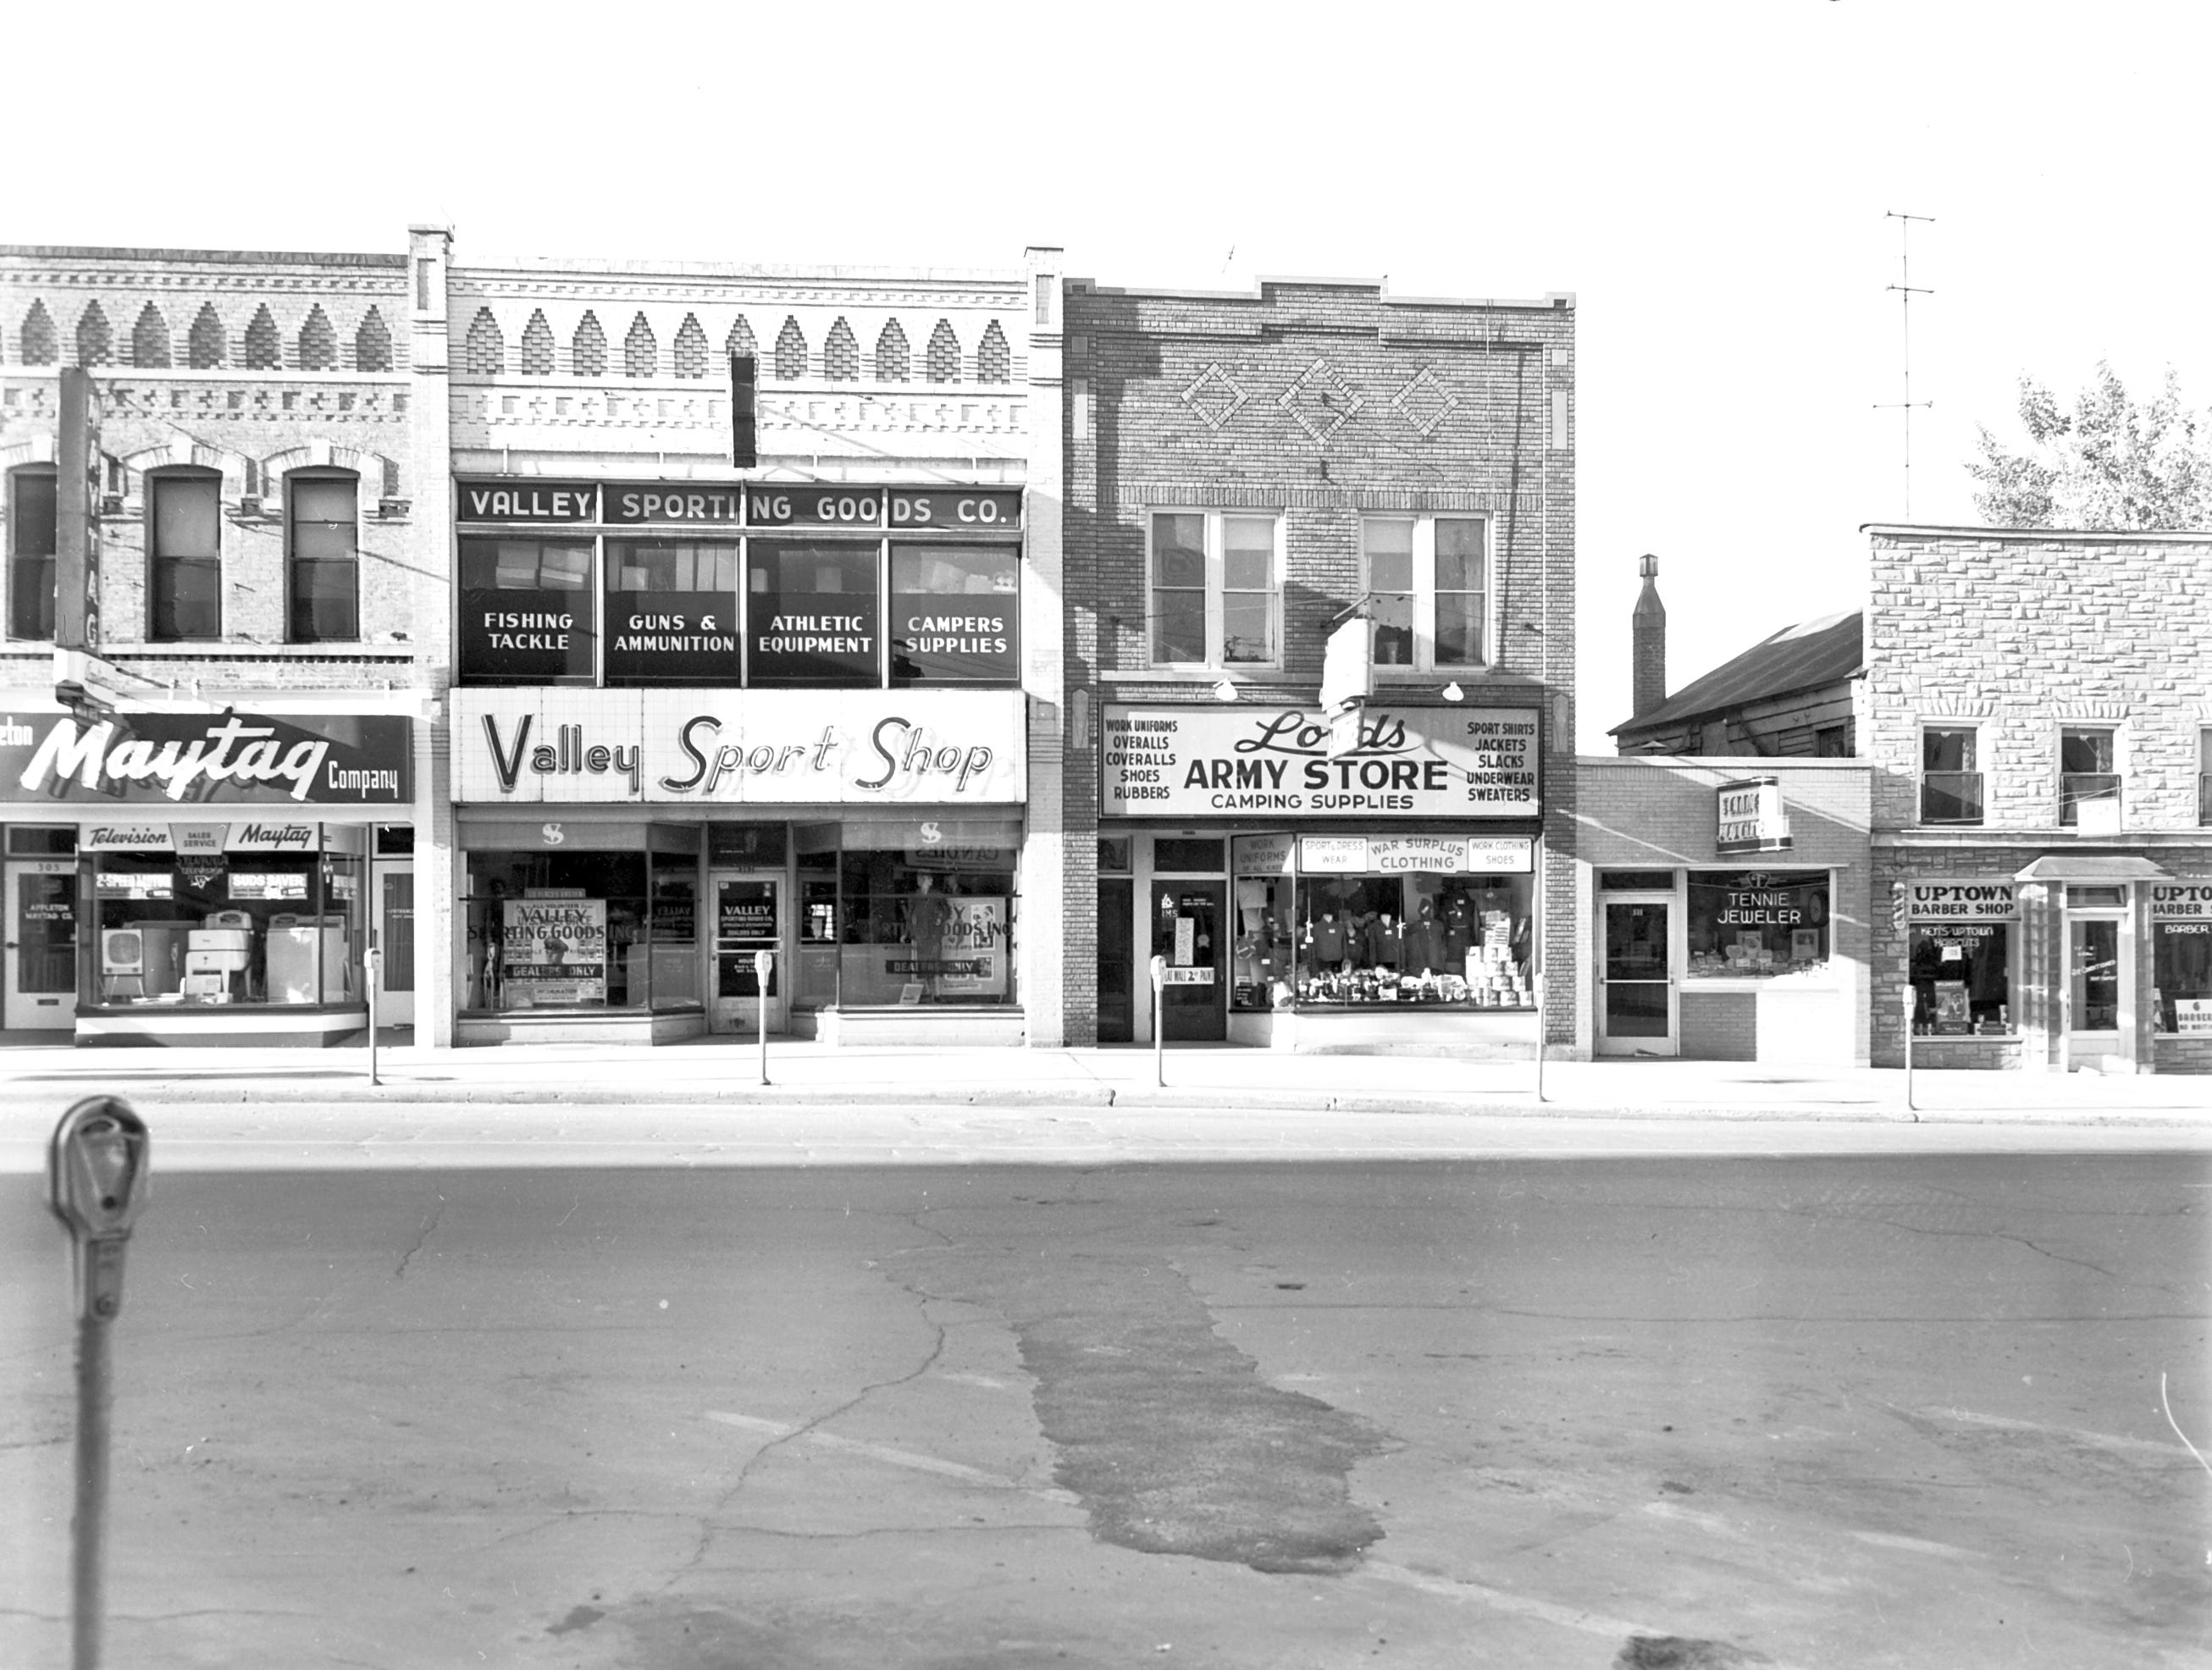 1957 Downtown Appleton. 300 West block on the south side of College Avenue: Appleton Maytag. Valley Sport Shop. Lords Army Store. Tennie Jeweler. Uptown Barber Shop.  Post-Crescent photo by staff.